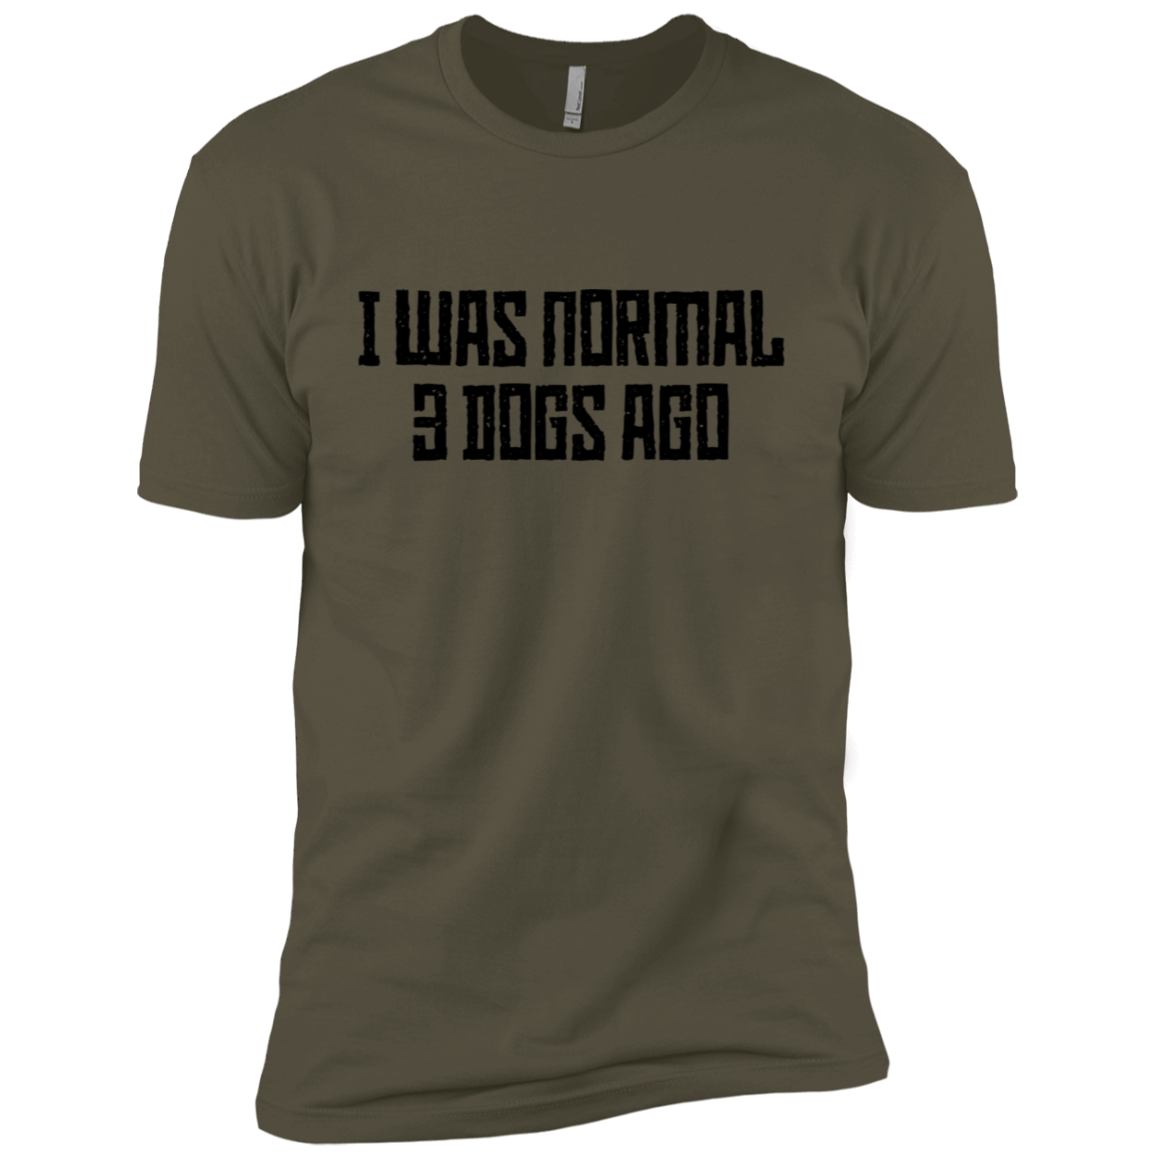 I Was Normal 3 Dogs Ago Men's Classic Tee